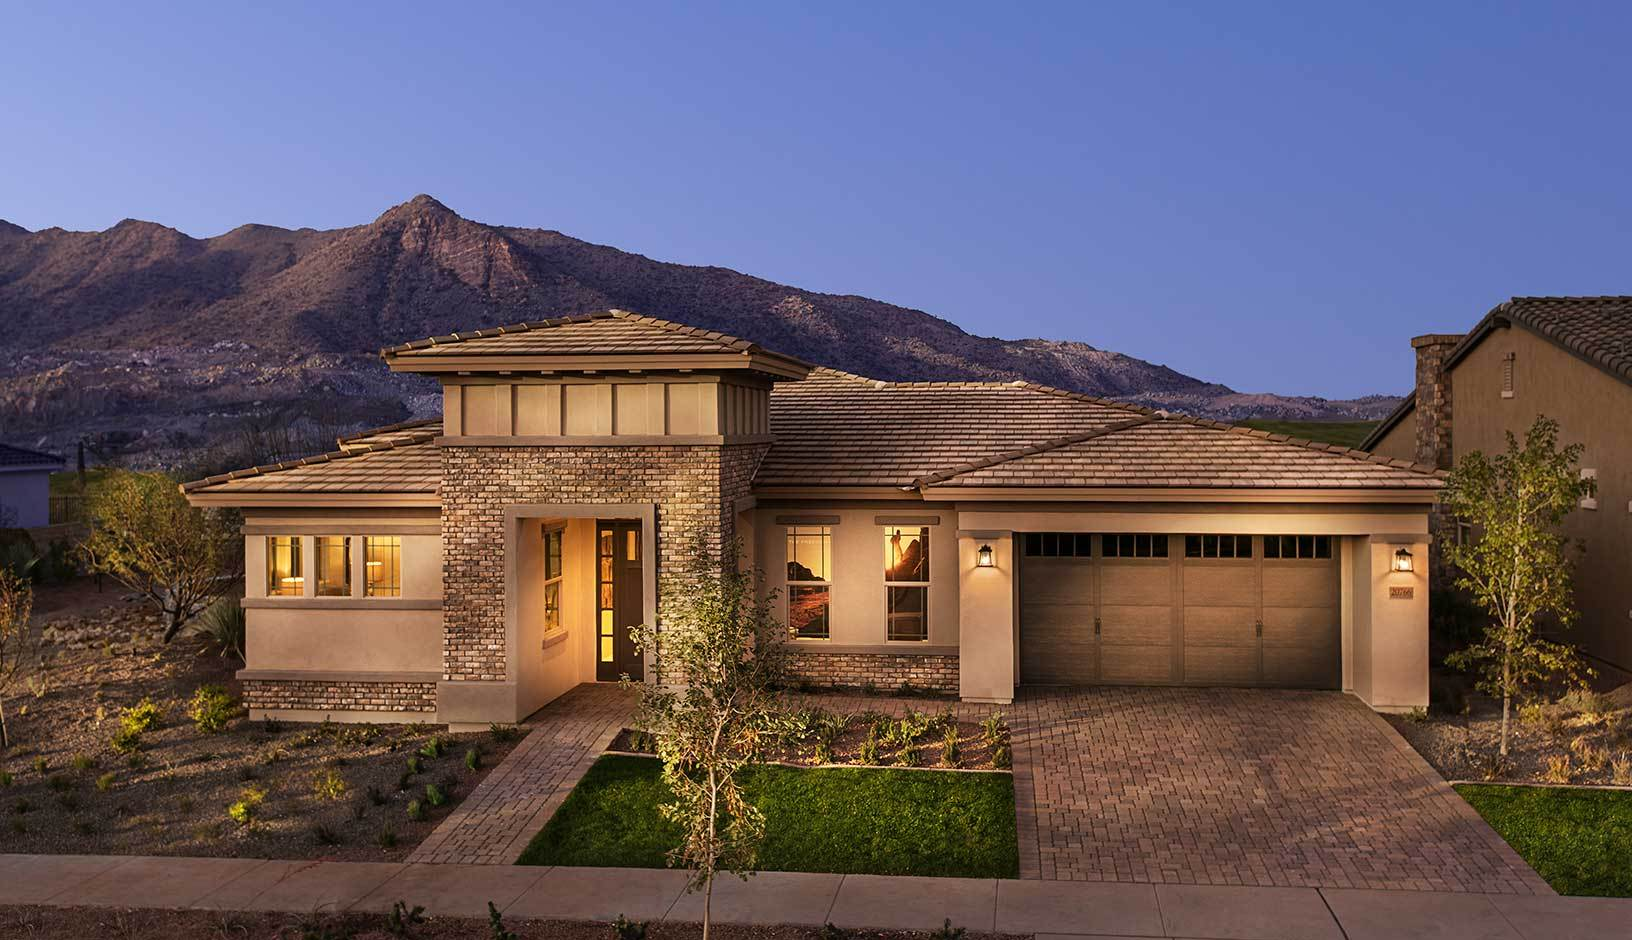 Single Family for Sale at Entertainer 20976 W. College Drive Buckeye, Arizona 85396 United States